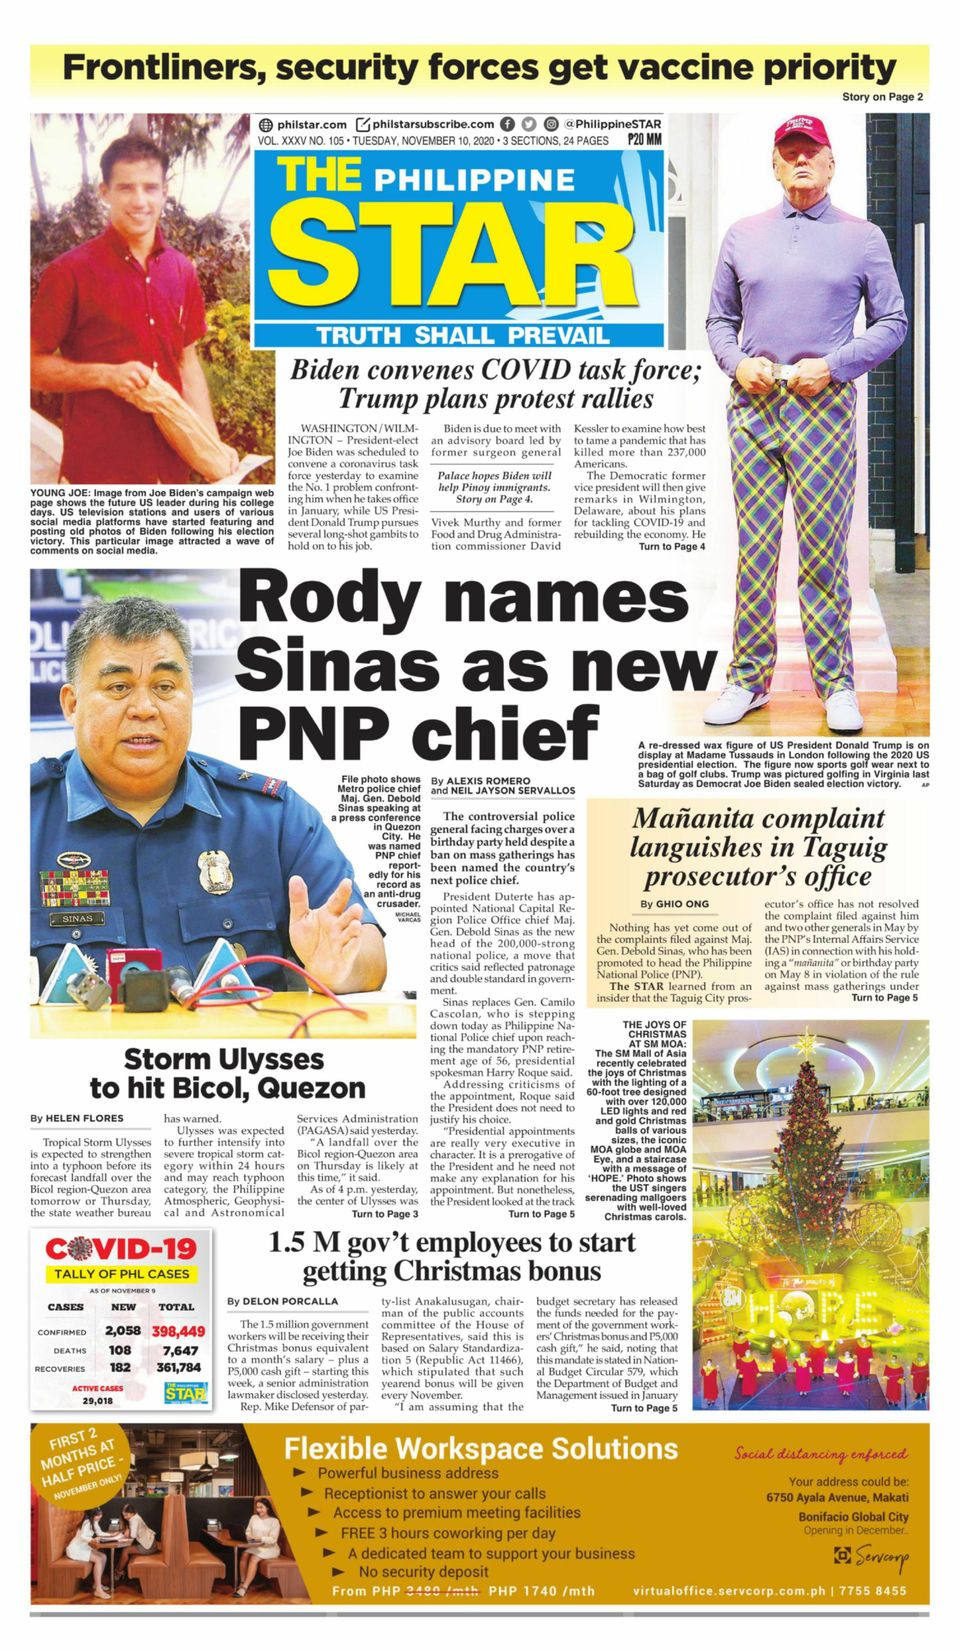 The Philippine Star Newspaper - Get your Digital Subscription